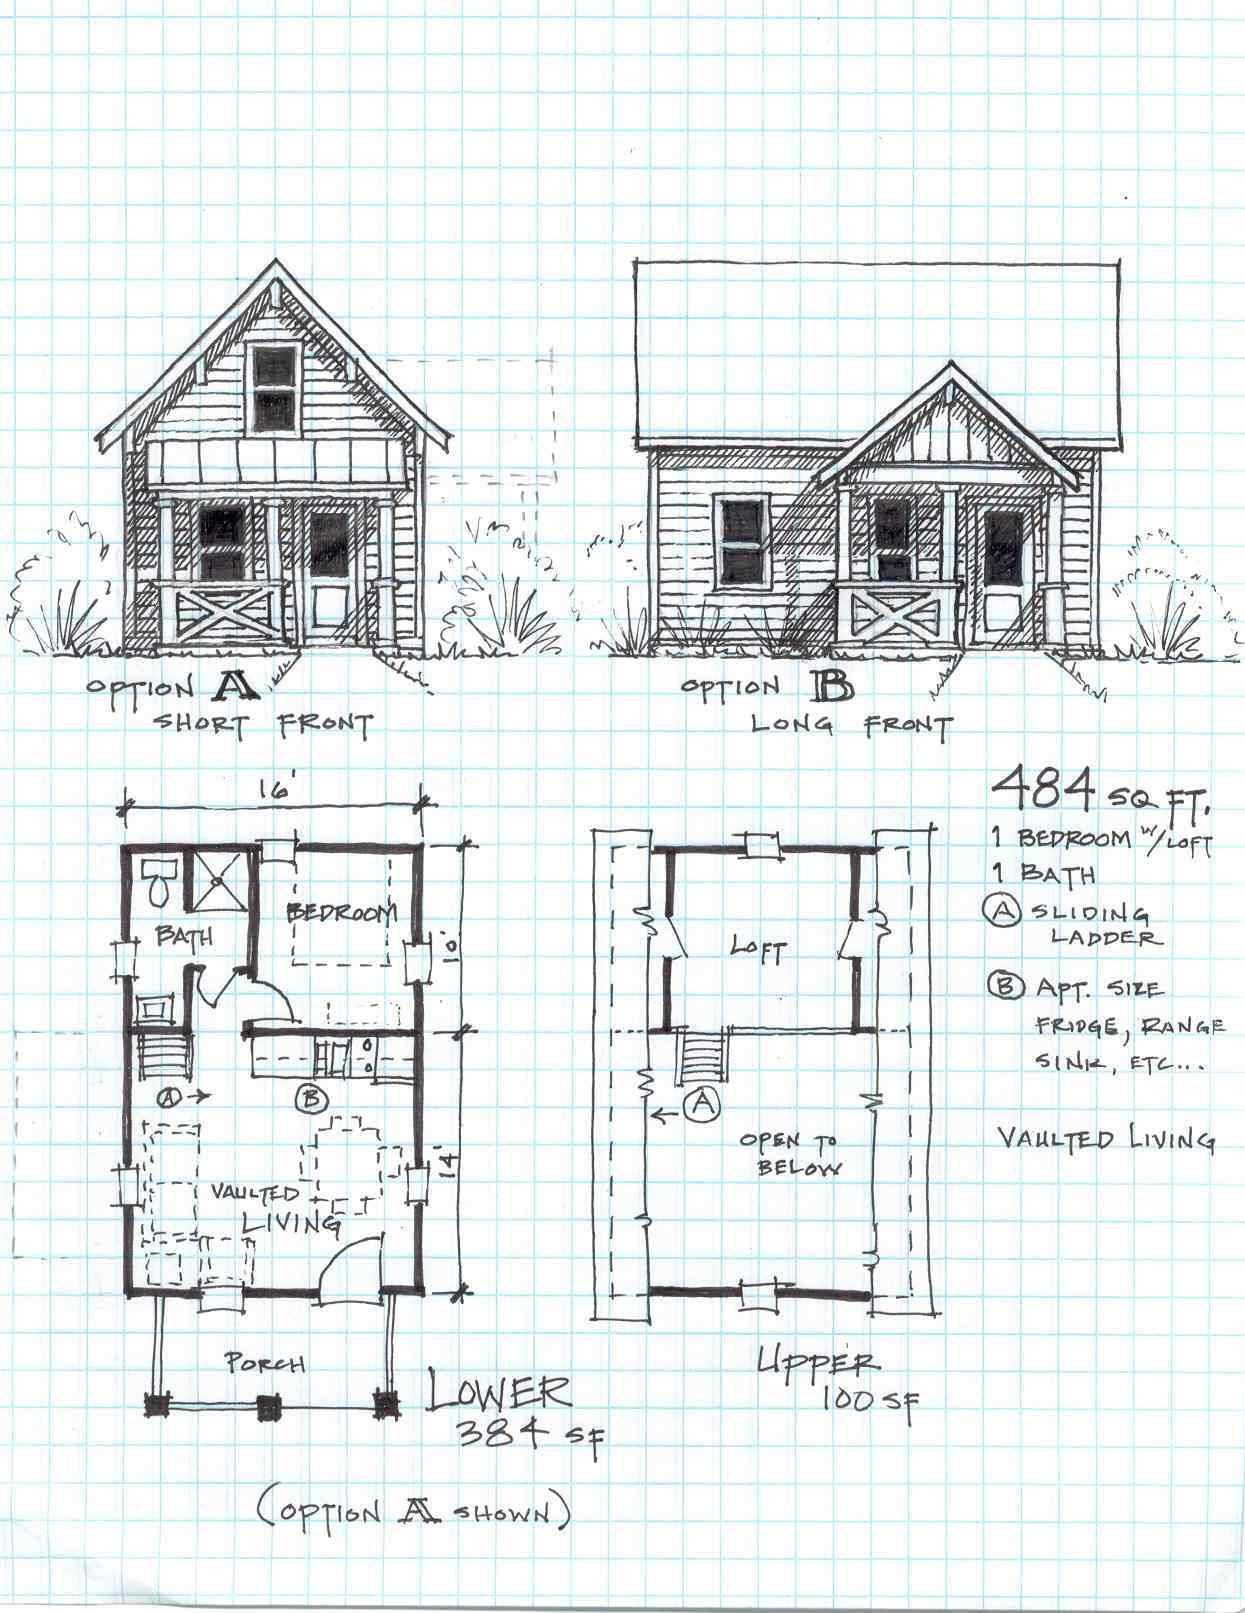 24 x 36 cabin plans with loft bing images cabin pinterest view source cabin plans with